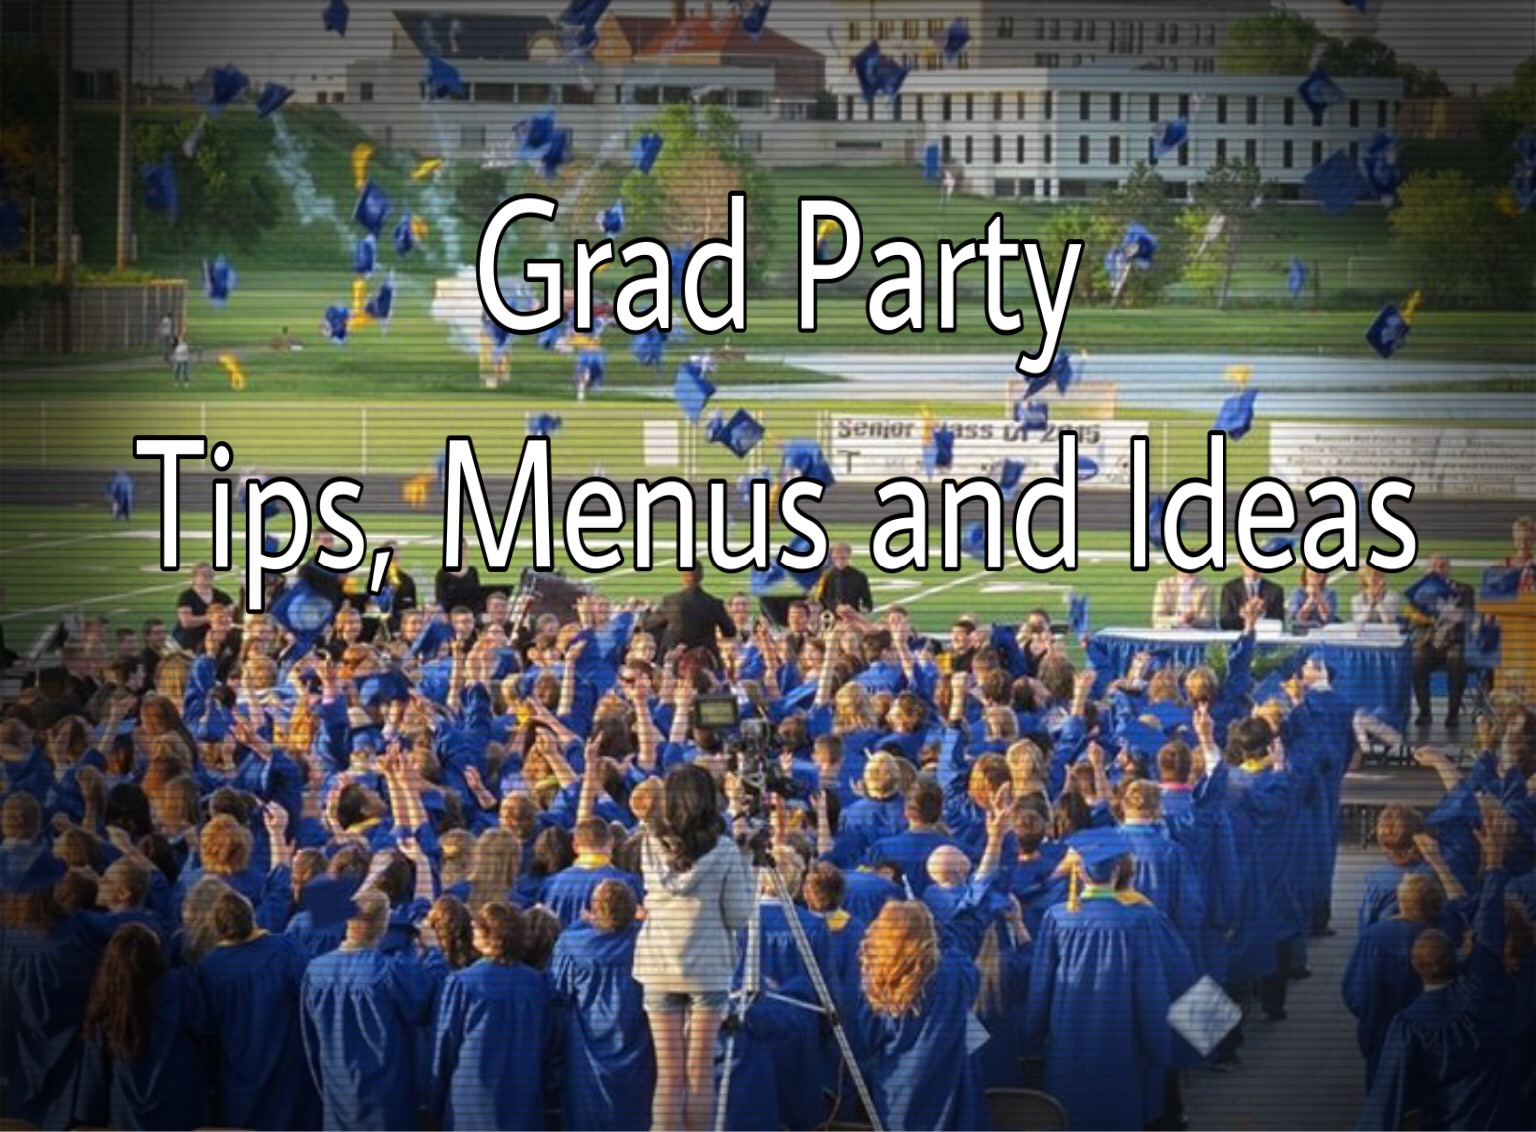 Graduation Party Tips, Menus and ideas